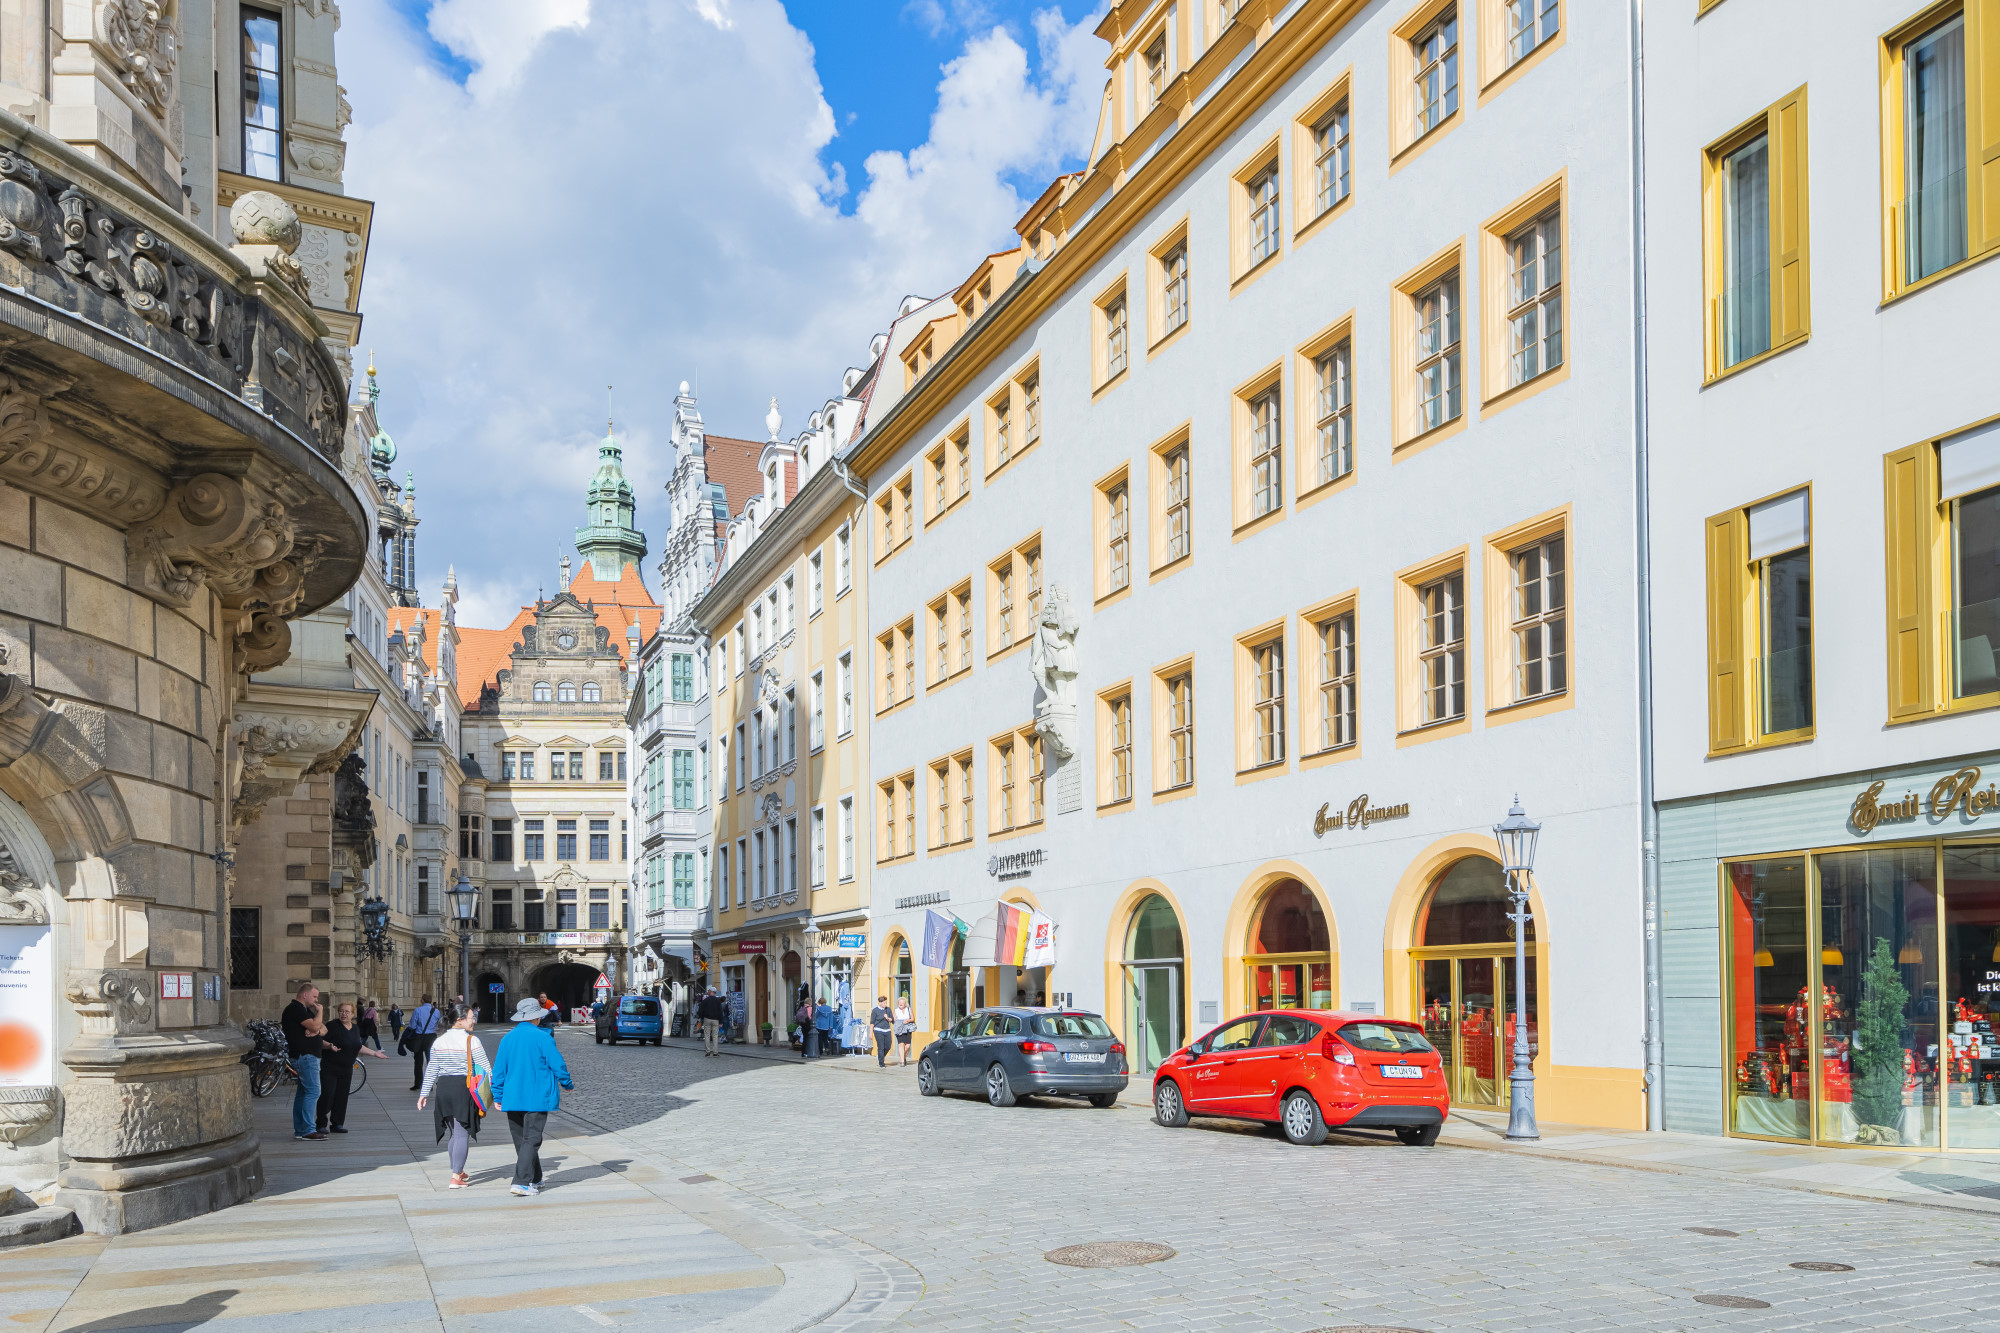 Located directly in the historic city center of Dresden, the metropolis on the River Elbe, the Hyperion Hotel Dresden am Schloss provided a great setting for the event.